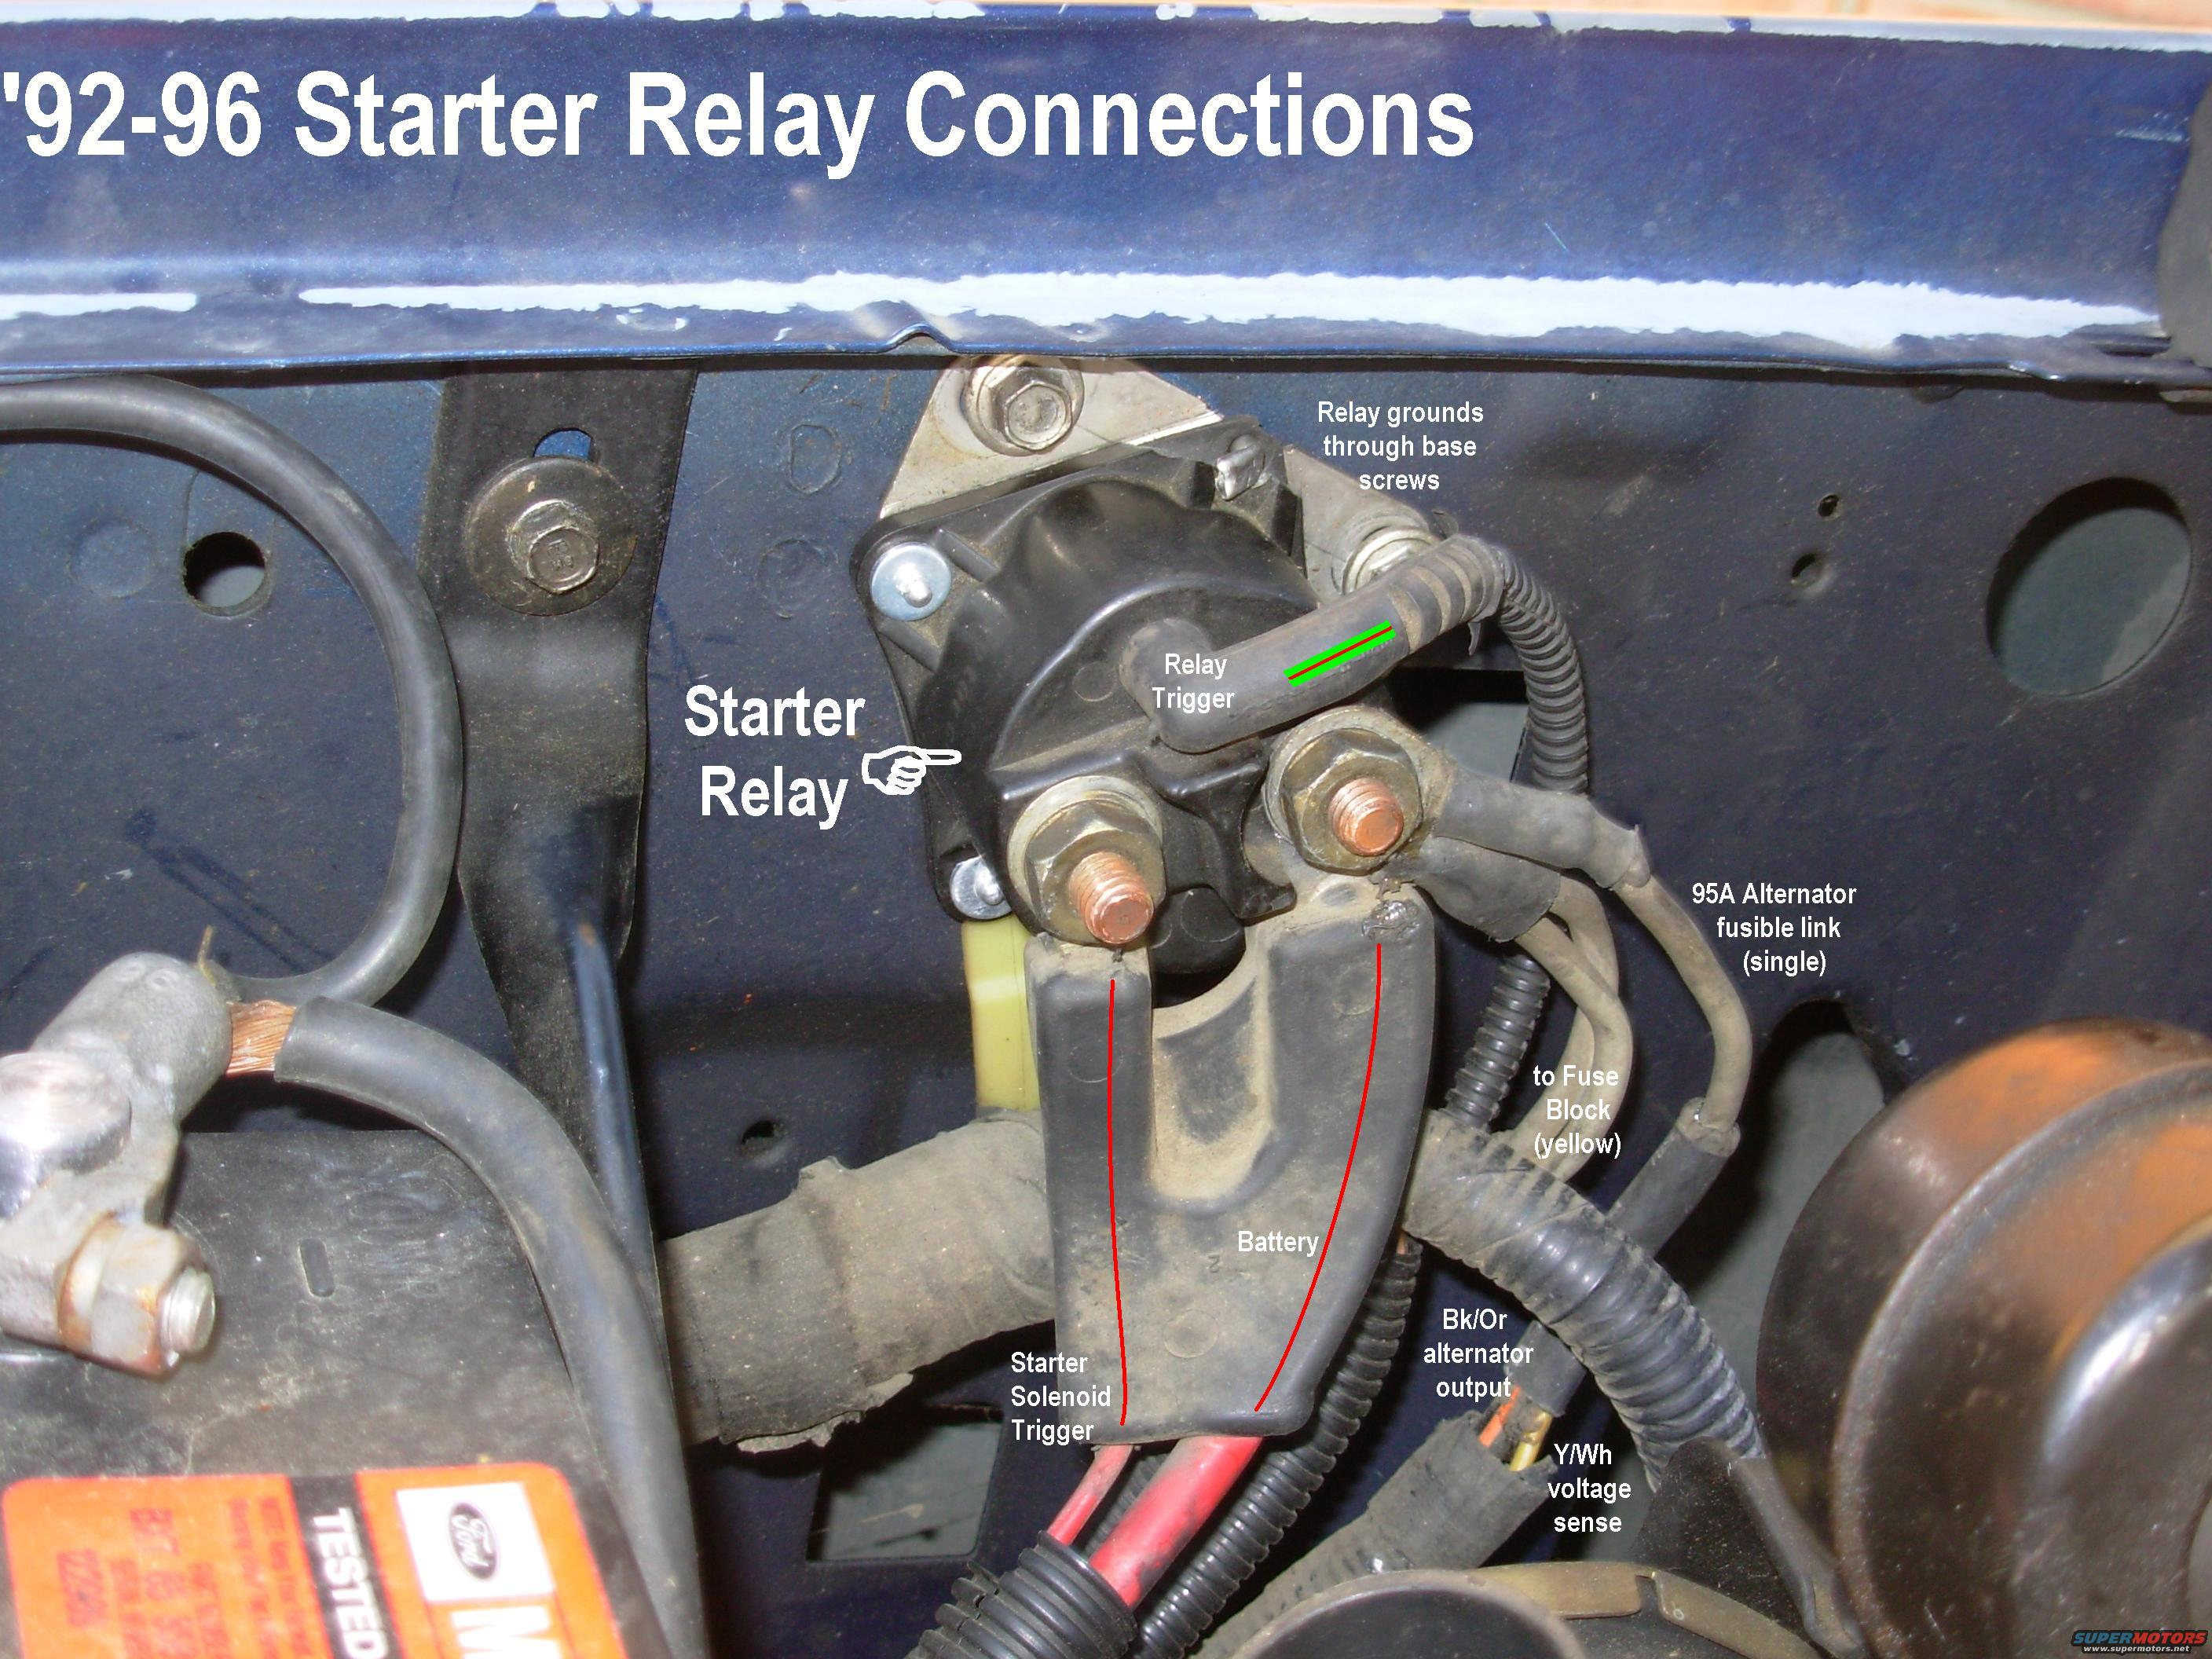 Ford F Starter Wiring Diagram on ford f150 keyless entry diagram, ford f150 starter relay fuse, 2001 ford f-150 wiring diagram, ford starter solenoid diagram, 1977 ford f-150 wiring diagram, 2004 ford f-150 wiring diagram, 1976 ford solenoid wiring diagram, ford f150 distributor diagram, f150 starter solenoid diagram, ford f150 vacuum lines diagram, ford f150 battery diagram, 1997 ford f-150 starter diagram, 1994 ford f-150 wiring diagram, ford f-150 wiring harness diagram, ford f150 o2 sensor diagram, ford f150 starter switch, ford f150 solenoid diagram, 1997 f150 wiring diagram, ford f150 relay diagram, 1998 f150 wiring diagram,